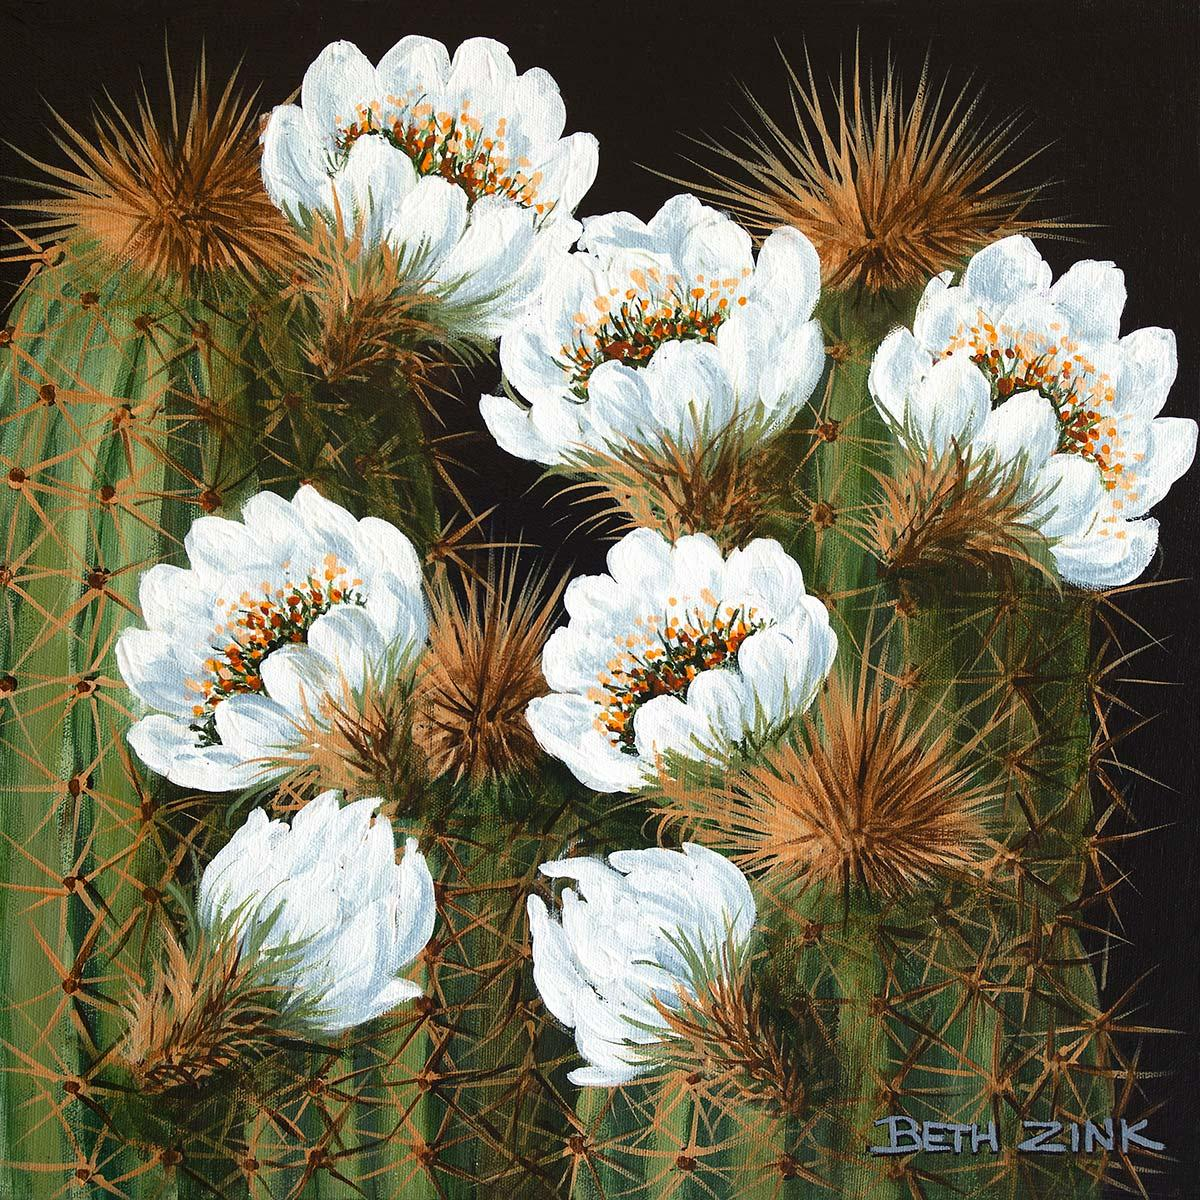 beth zink painting two cactus blooming white flowers